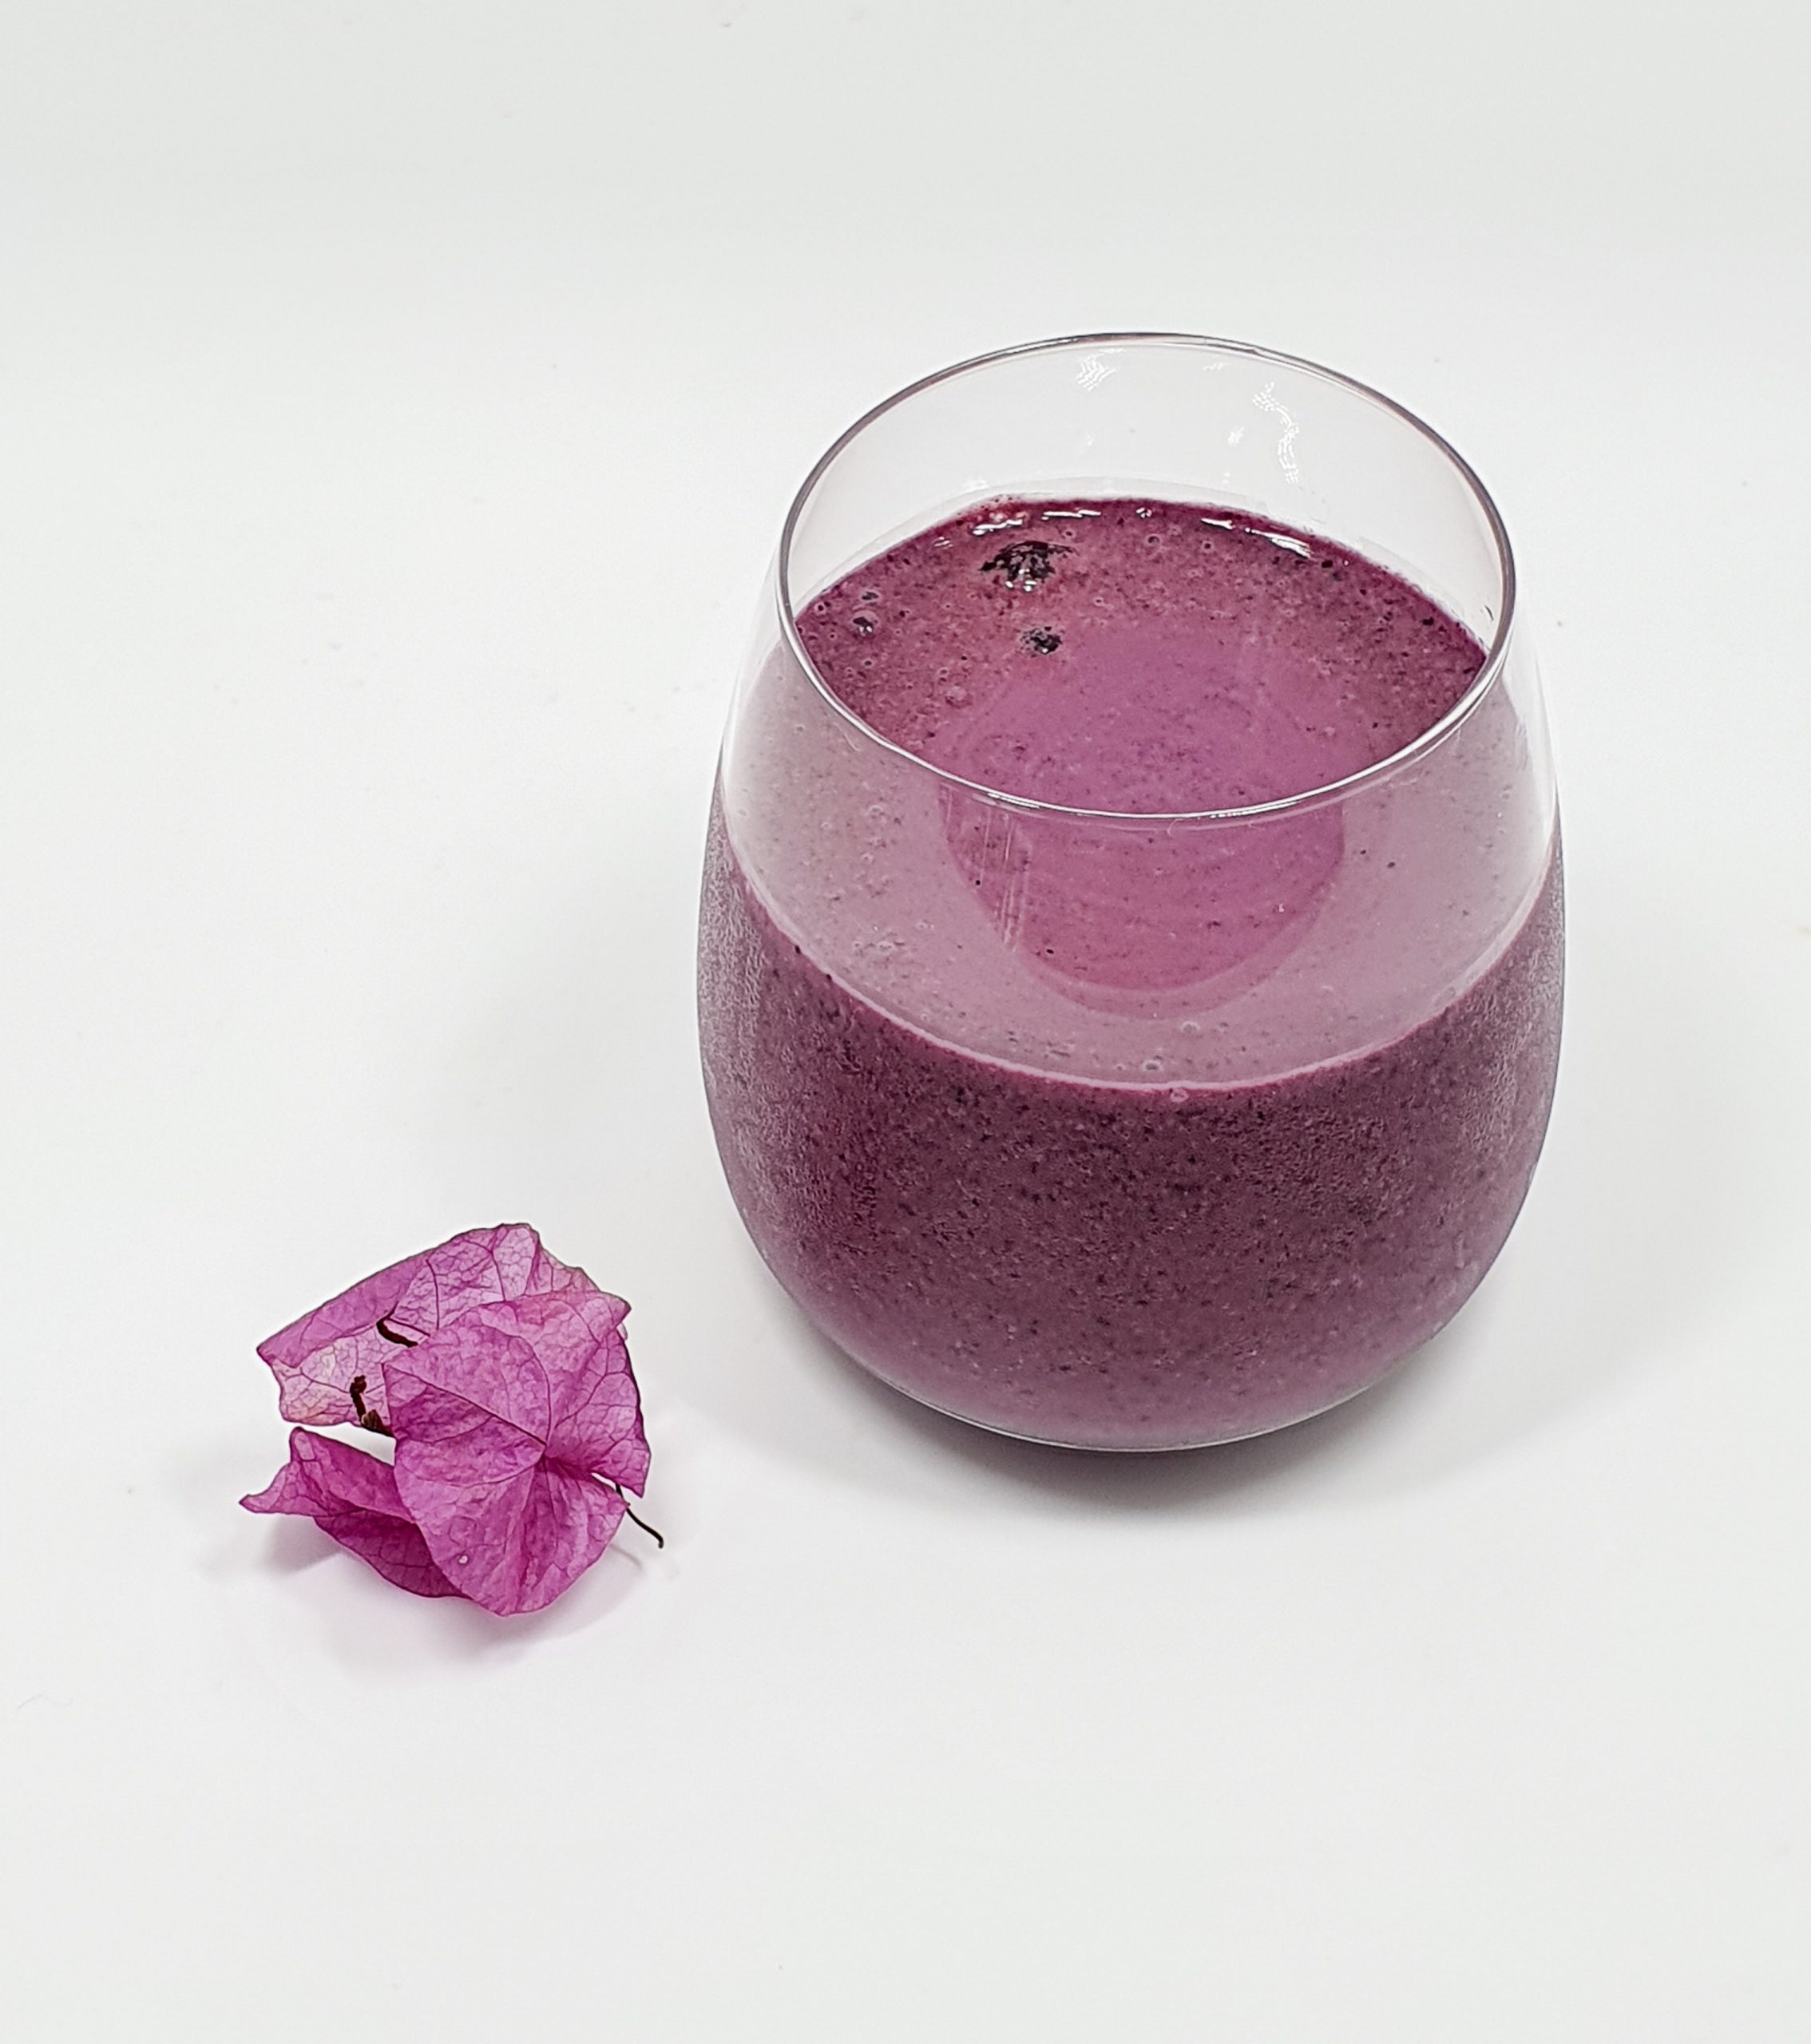 Glass with blueberry oatmeal smoothie